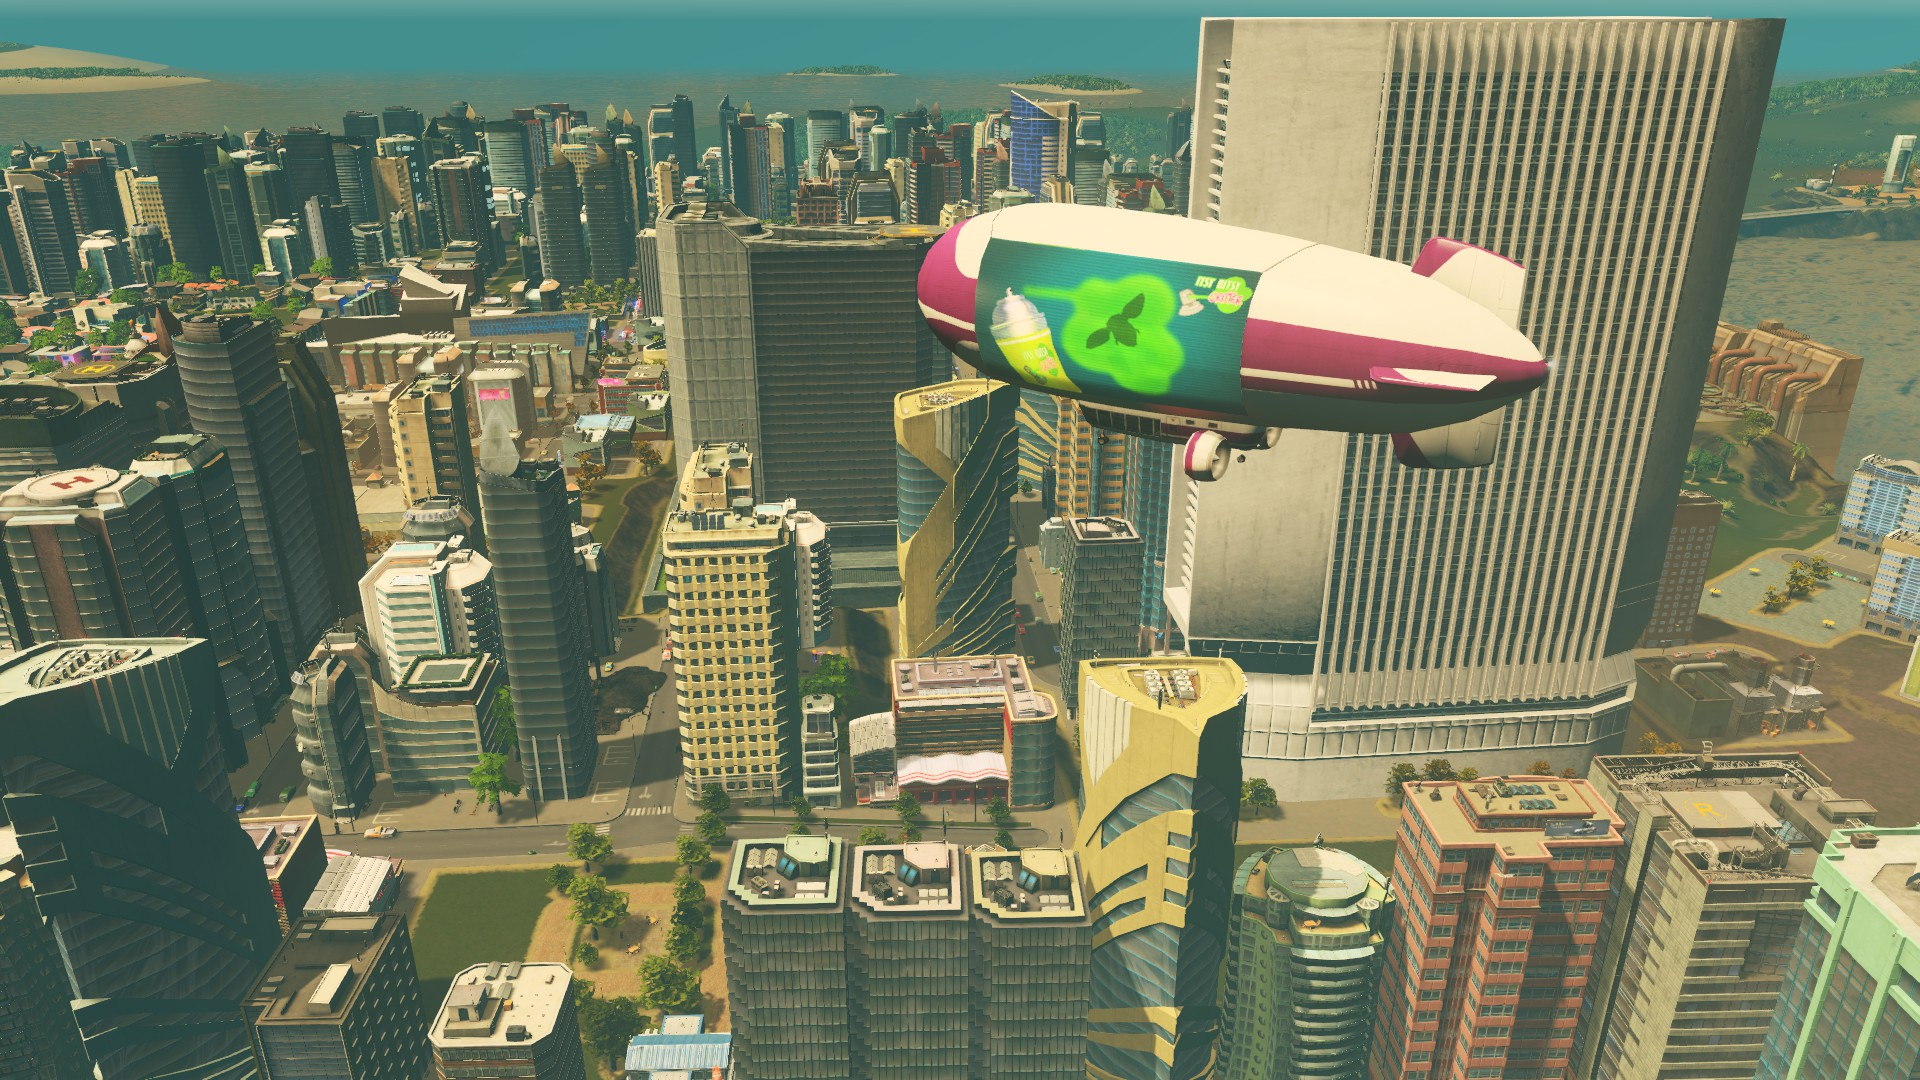 Mass Transit for Cities: Skylines may be the most enjoyable